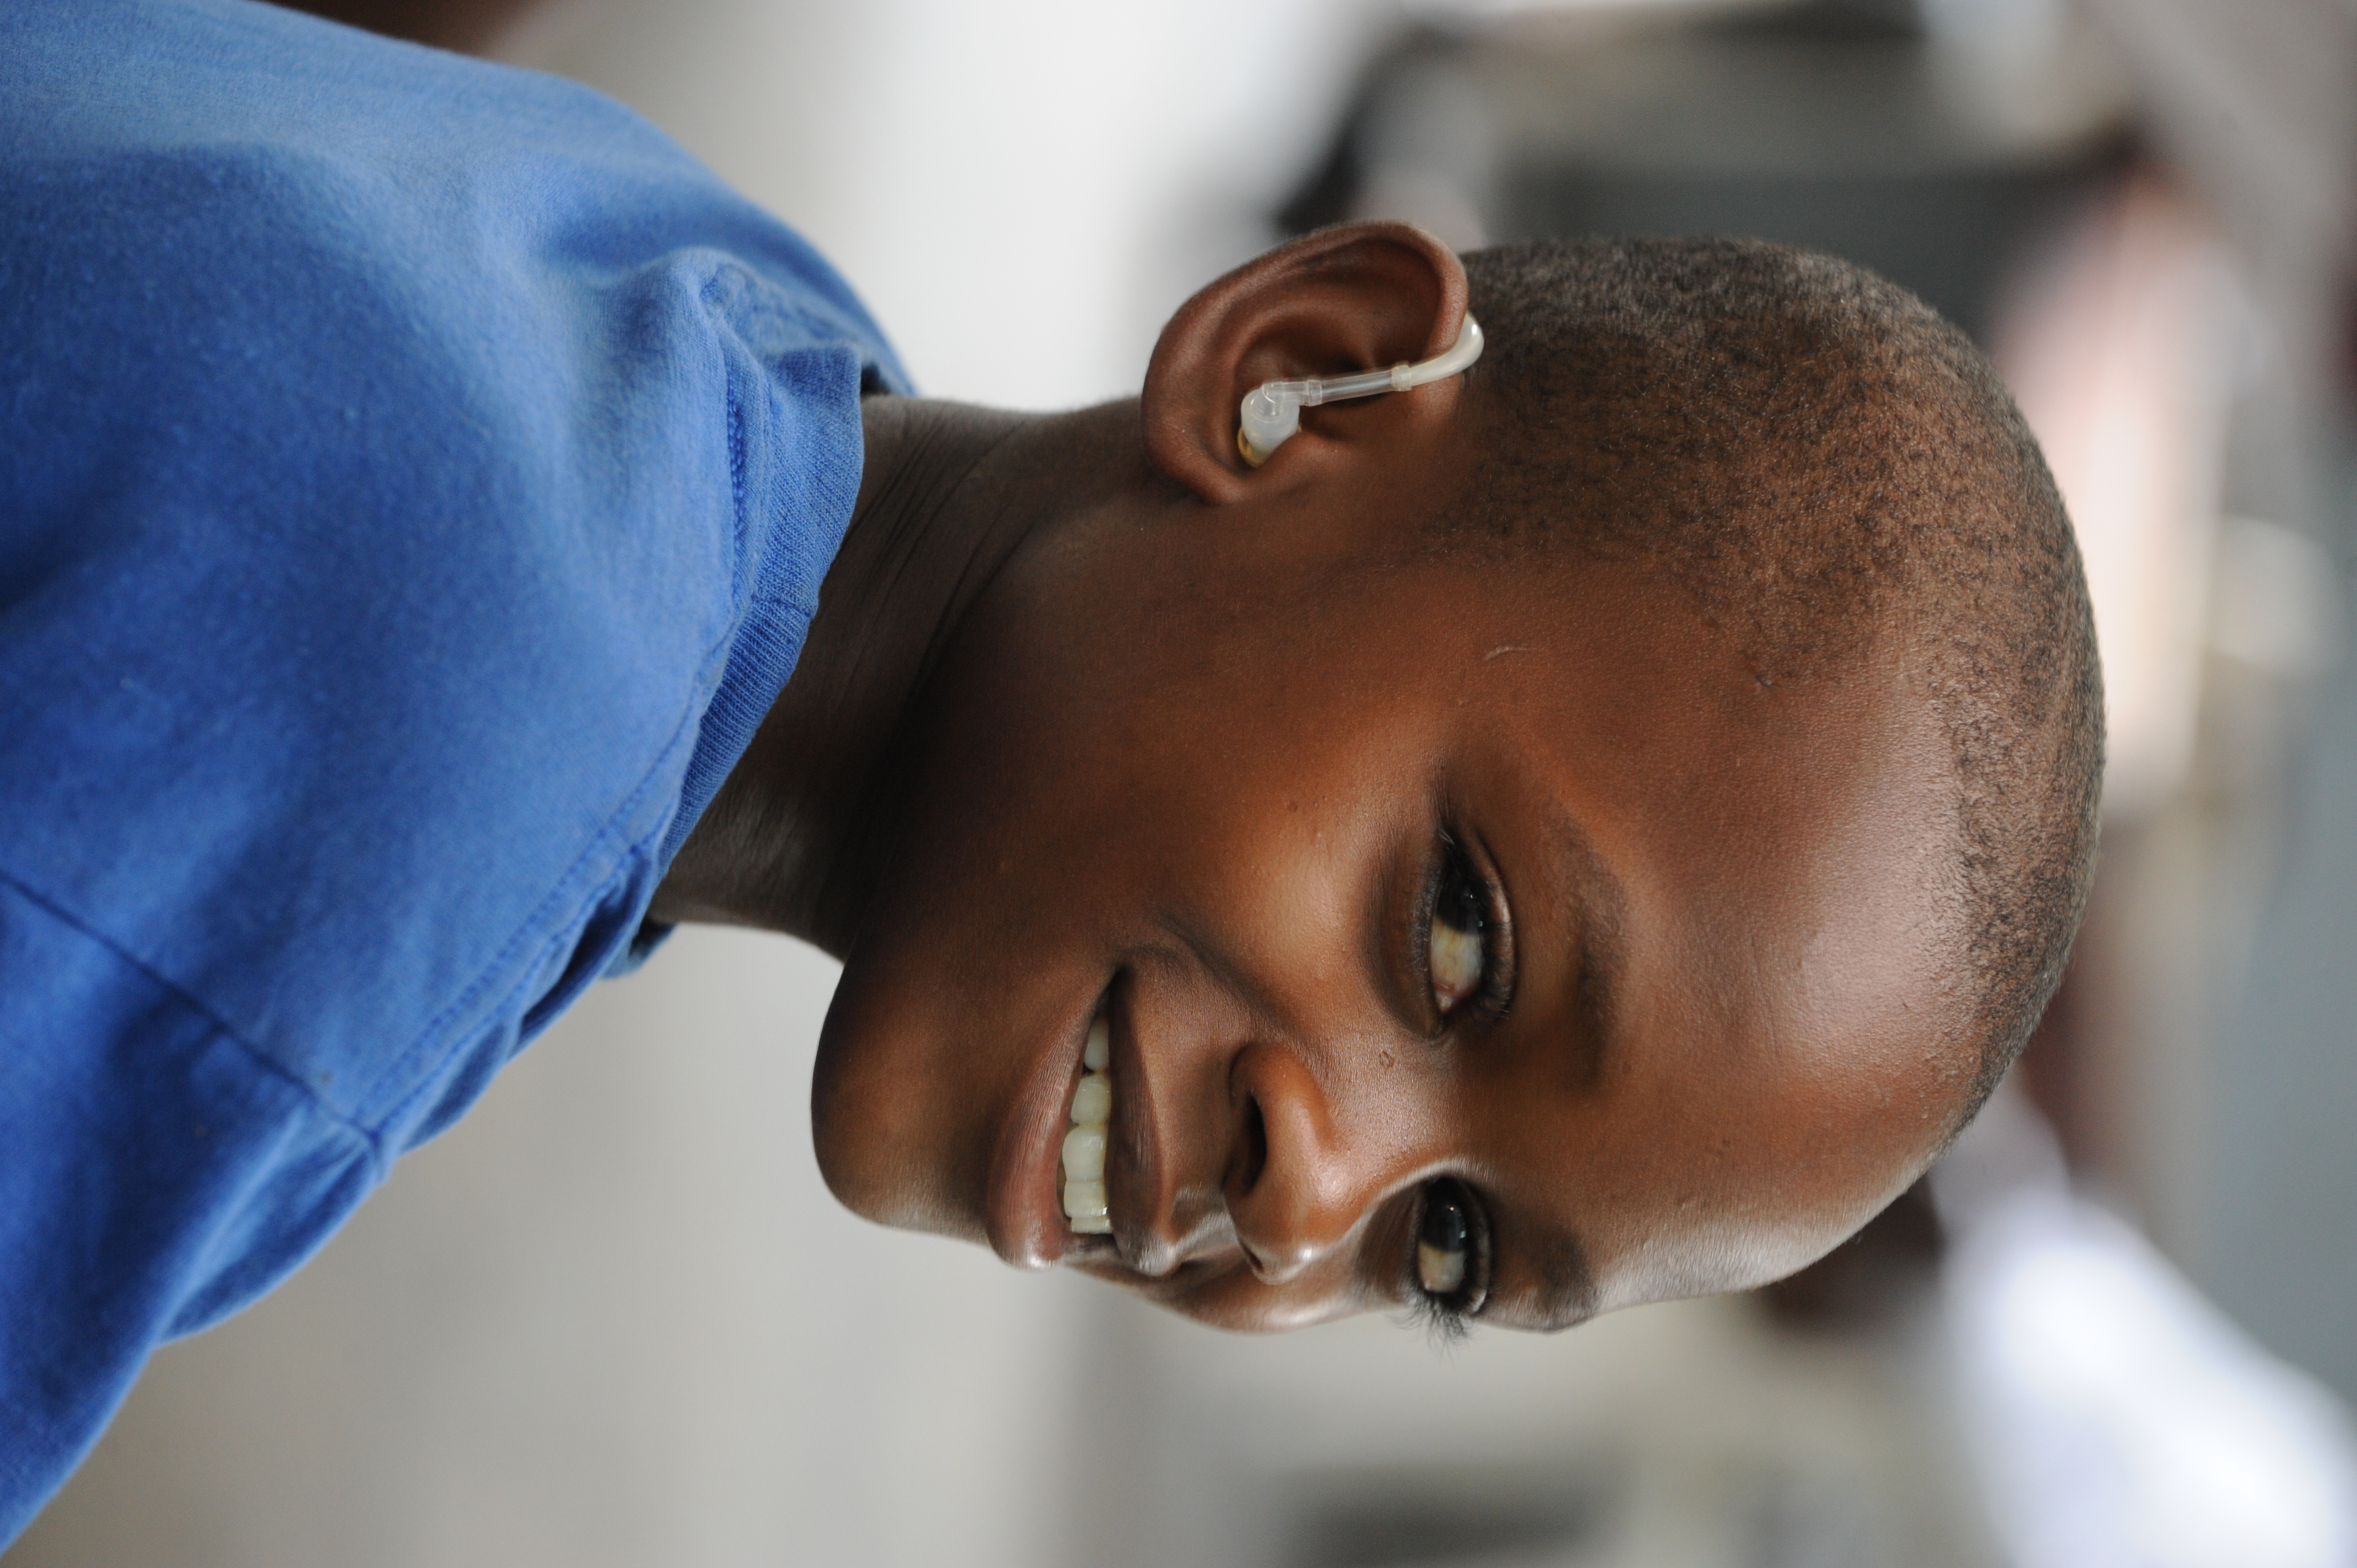 Black boy using a hearing aid. Cover Image